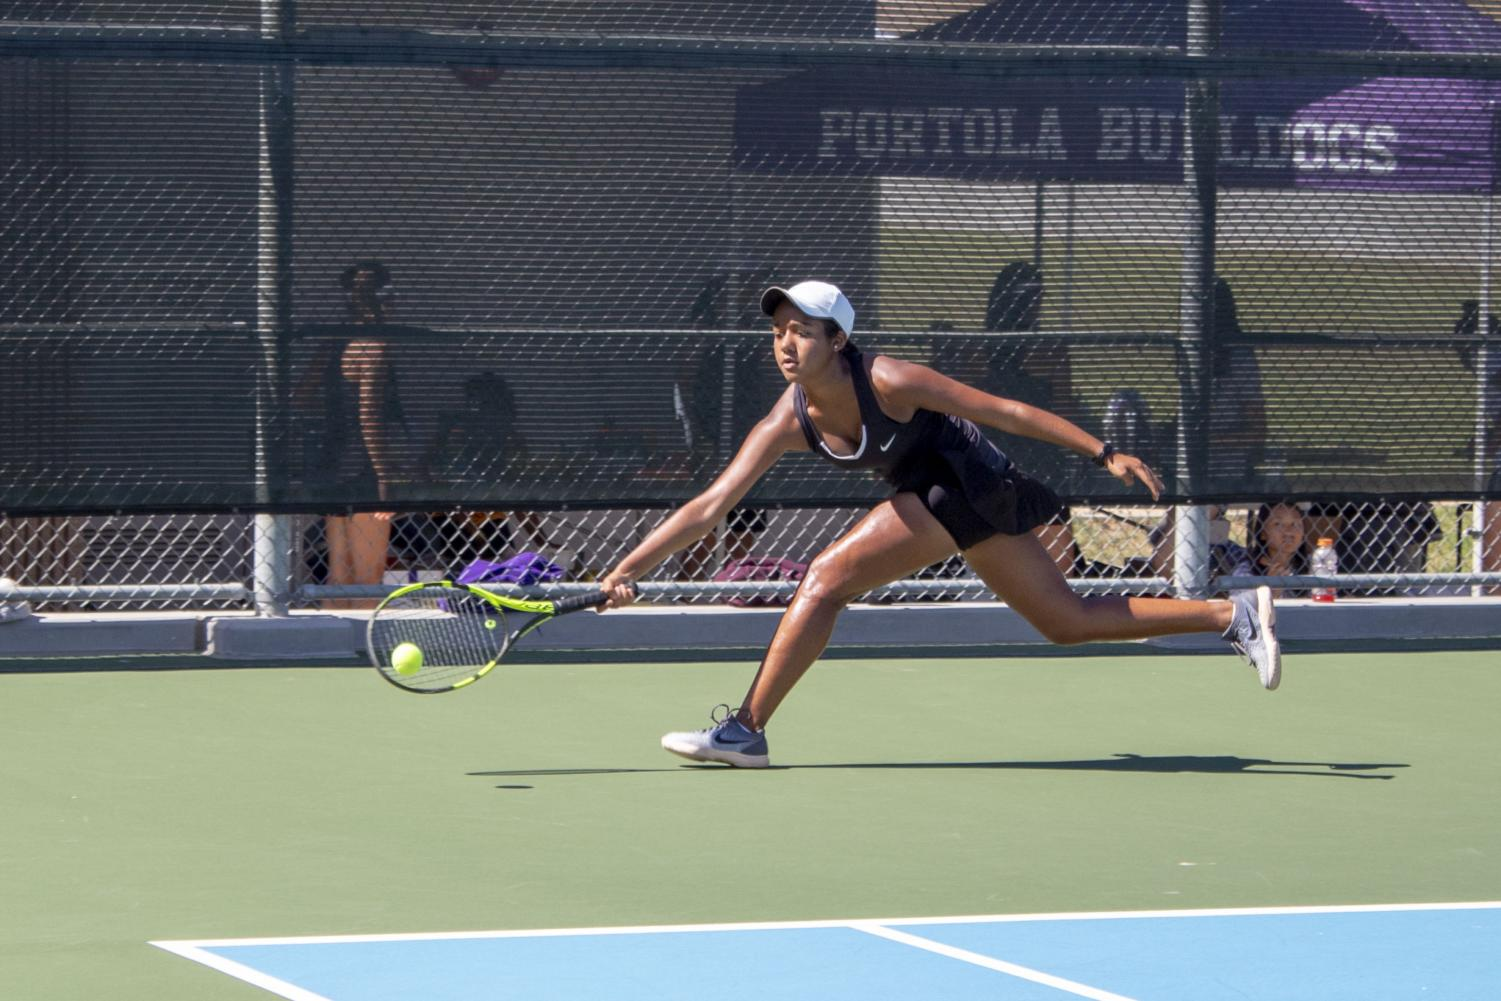 Just getting there in time, freshman Saachi Pavani returns a powerful crosscourt shot to win the point.